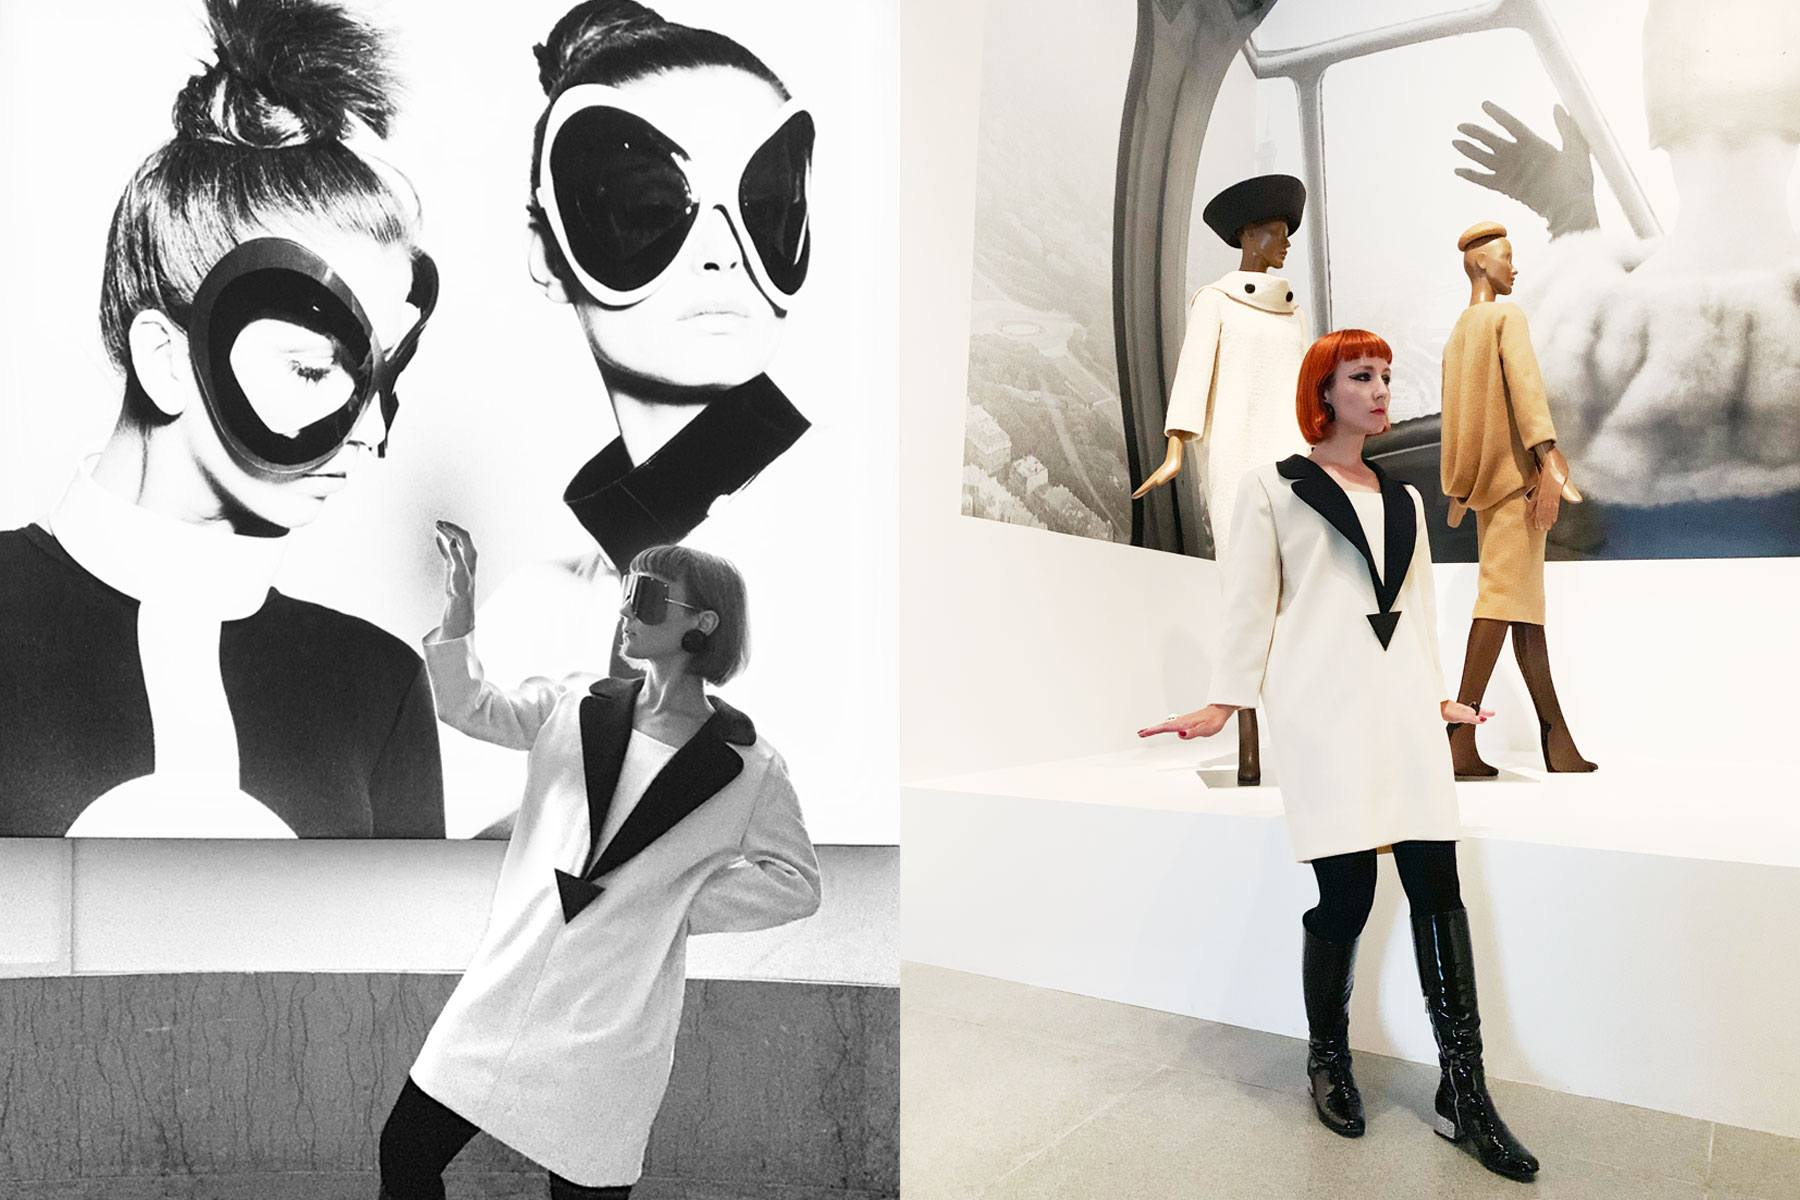 New York City designer Amber Doyle photographed in vintage Pierre Cardin at the Brooklyn Museum. Photography by Alexander Thompson for Ponyboy magazine.